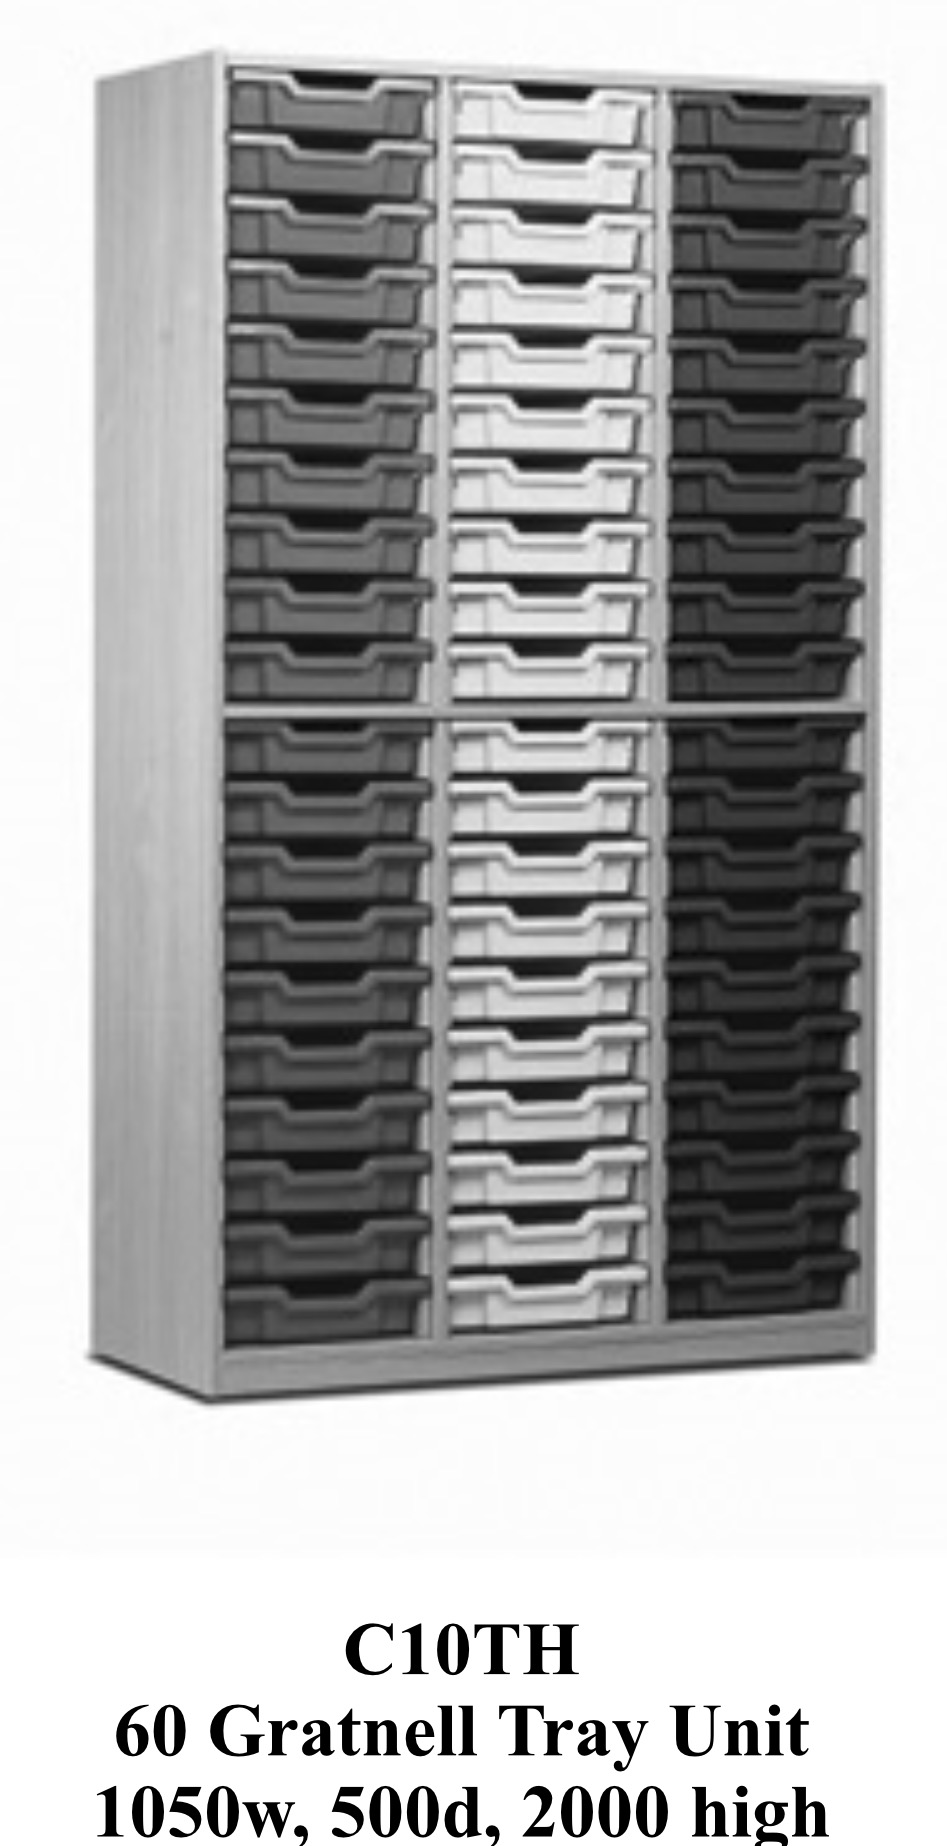 60 tray unit 1030 wide